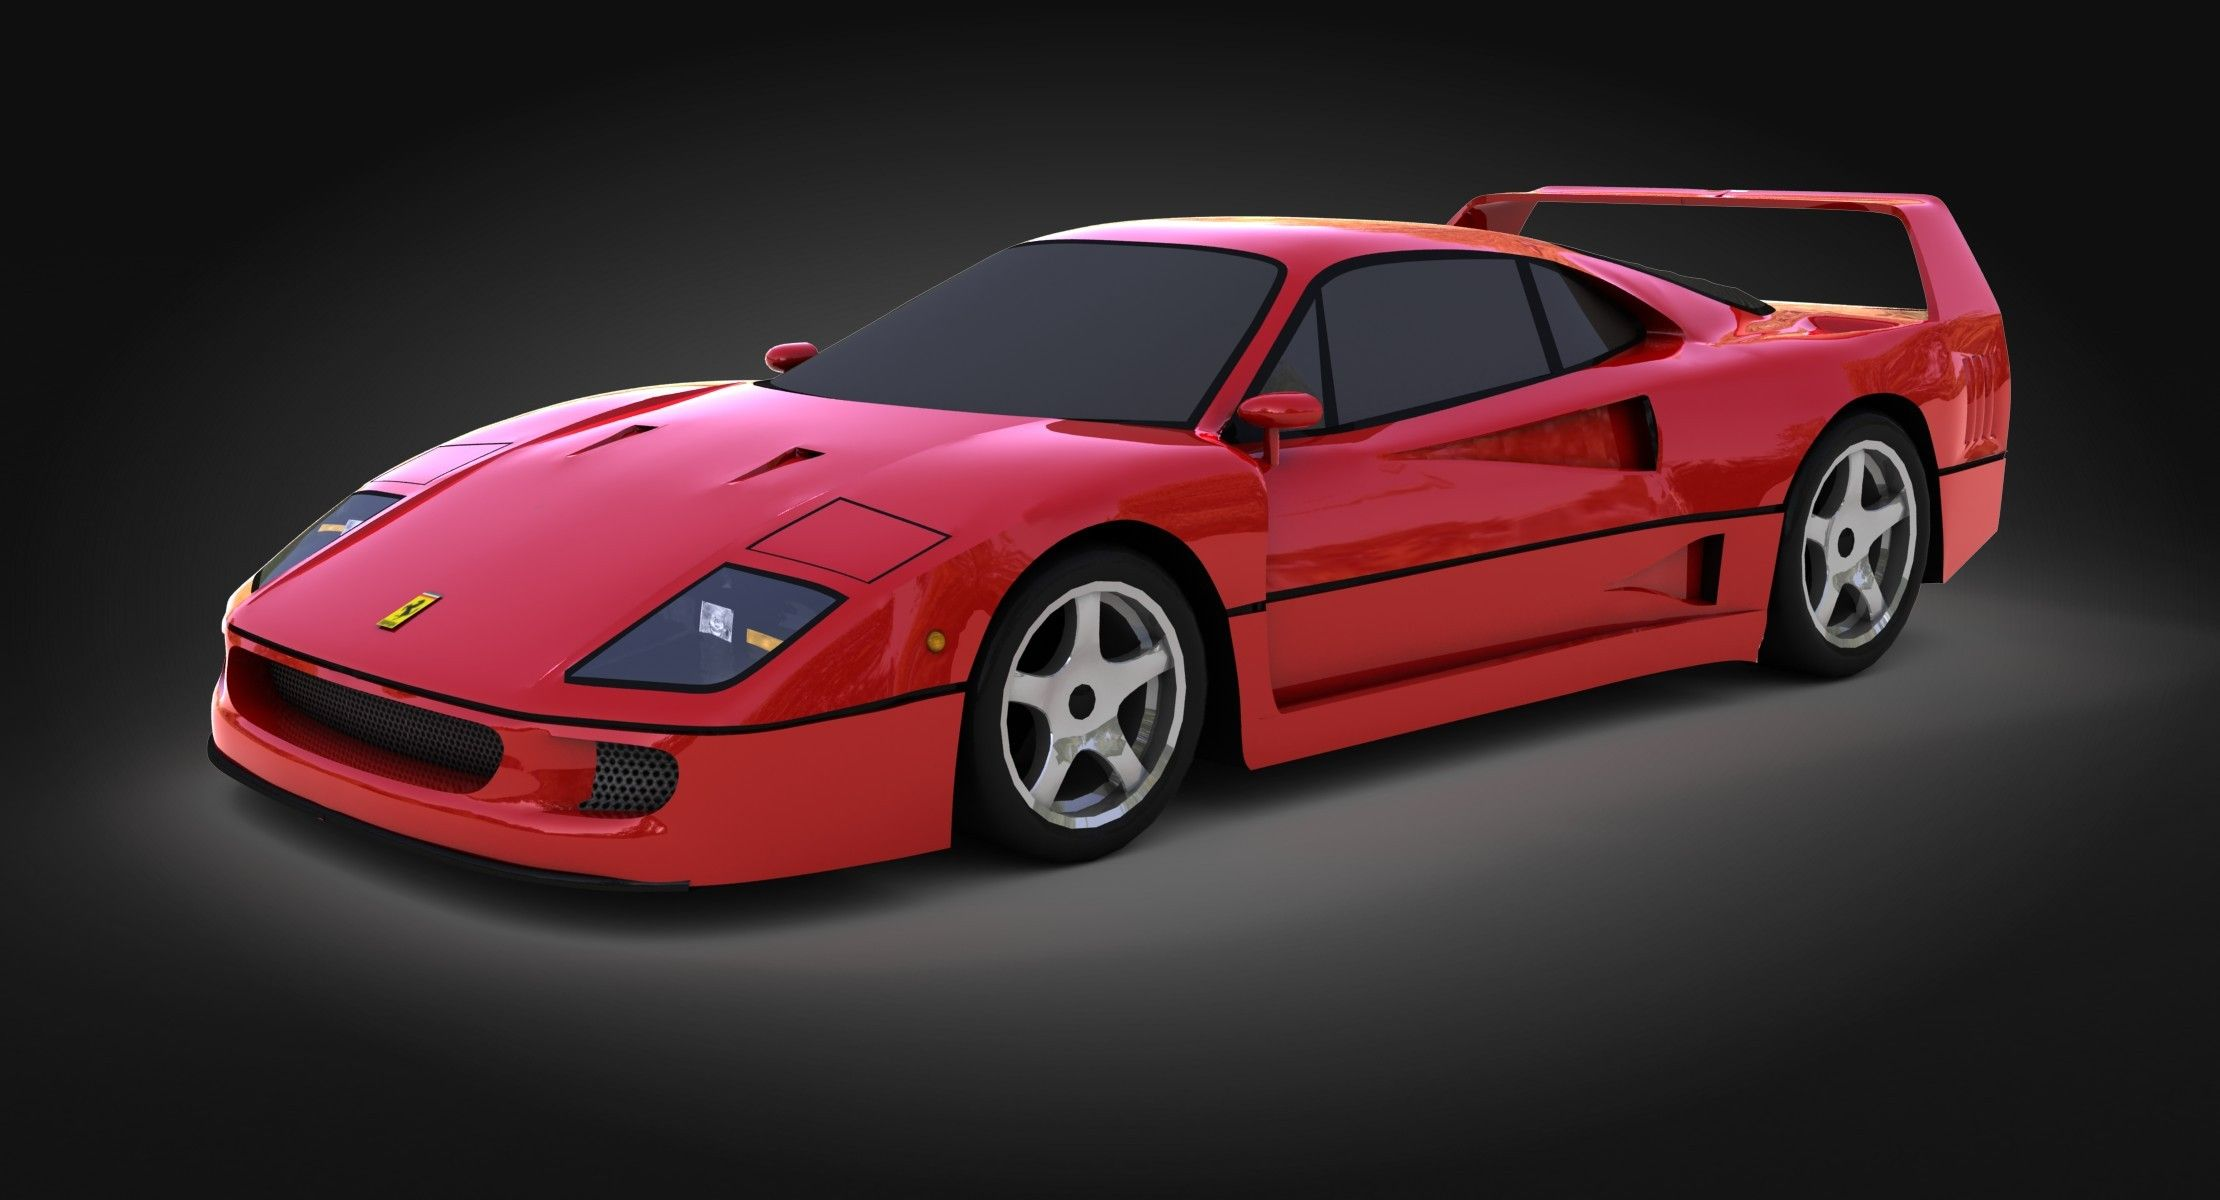 The Last Ferrari Created Under The Great Komendatore Nothing To Add Lowpoly 3dmodel Of The Car Opticaldreamsoft Car 3d Model 3d Model Model